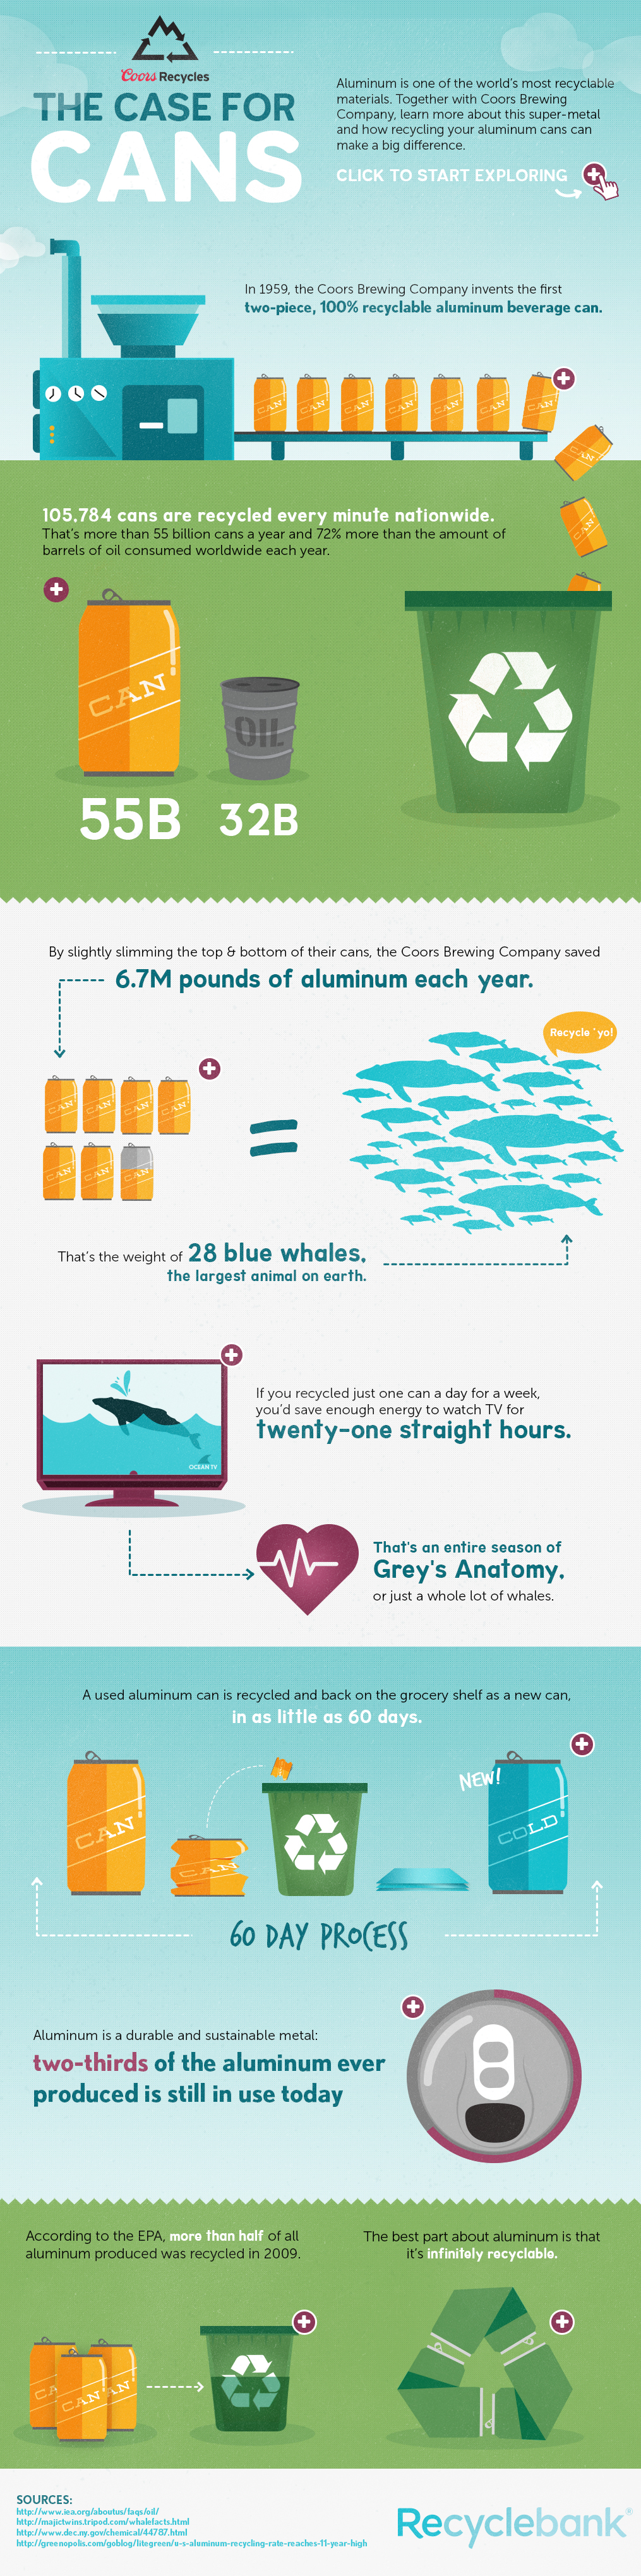 The Case for Cans – Recyclebank Aluminum Recycling Facts